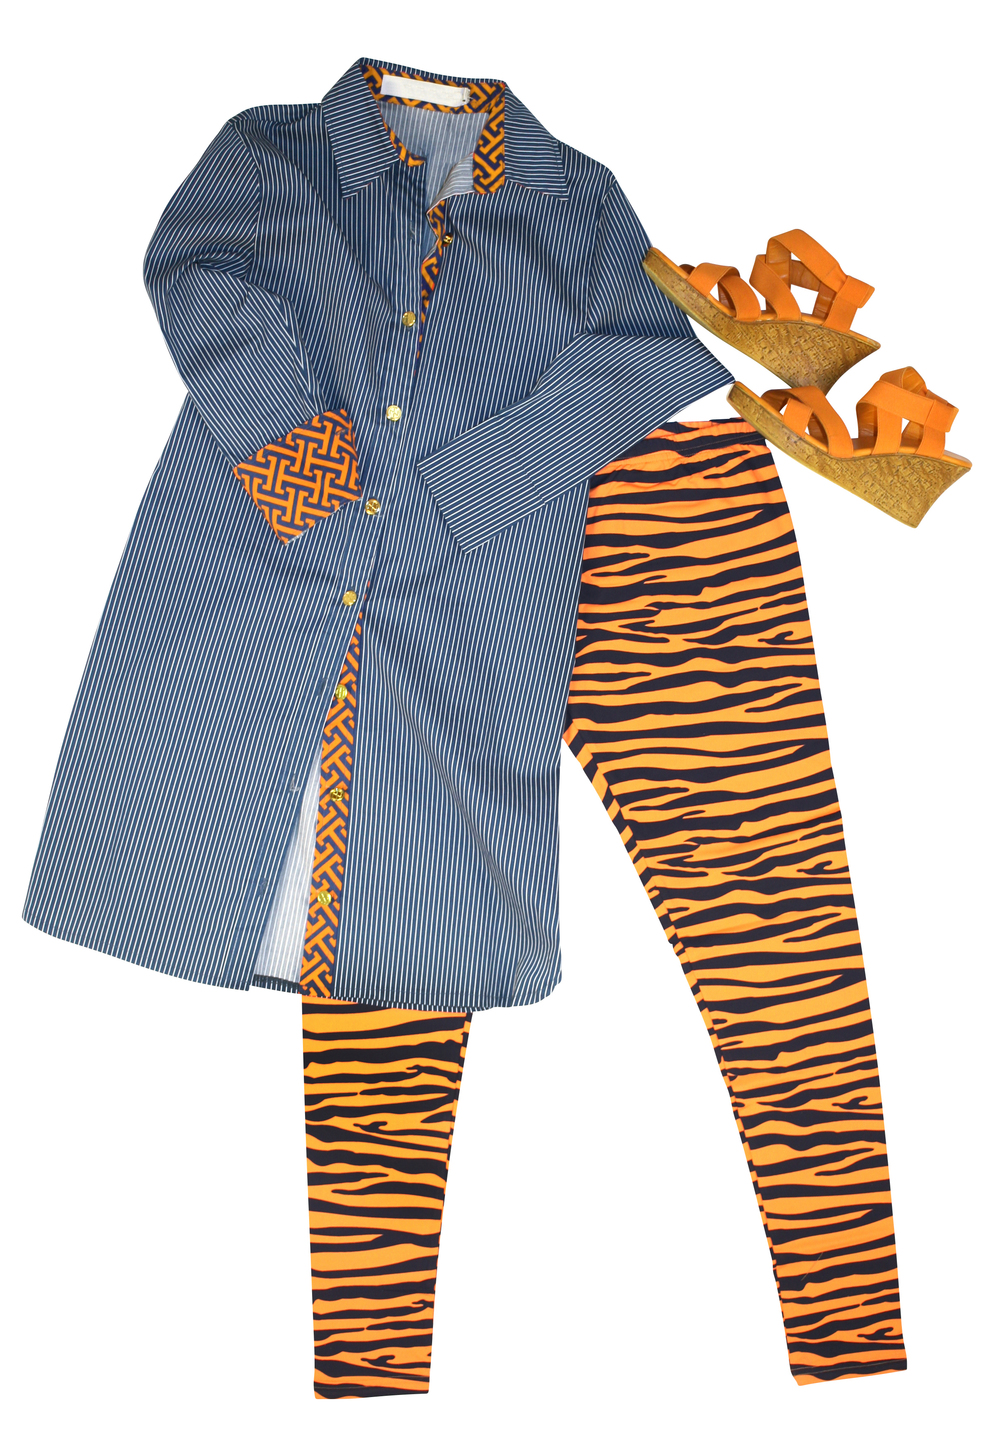 tiger legs with blue striped top.jpg